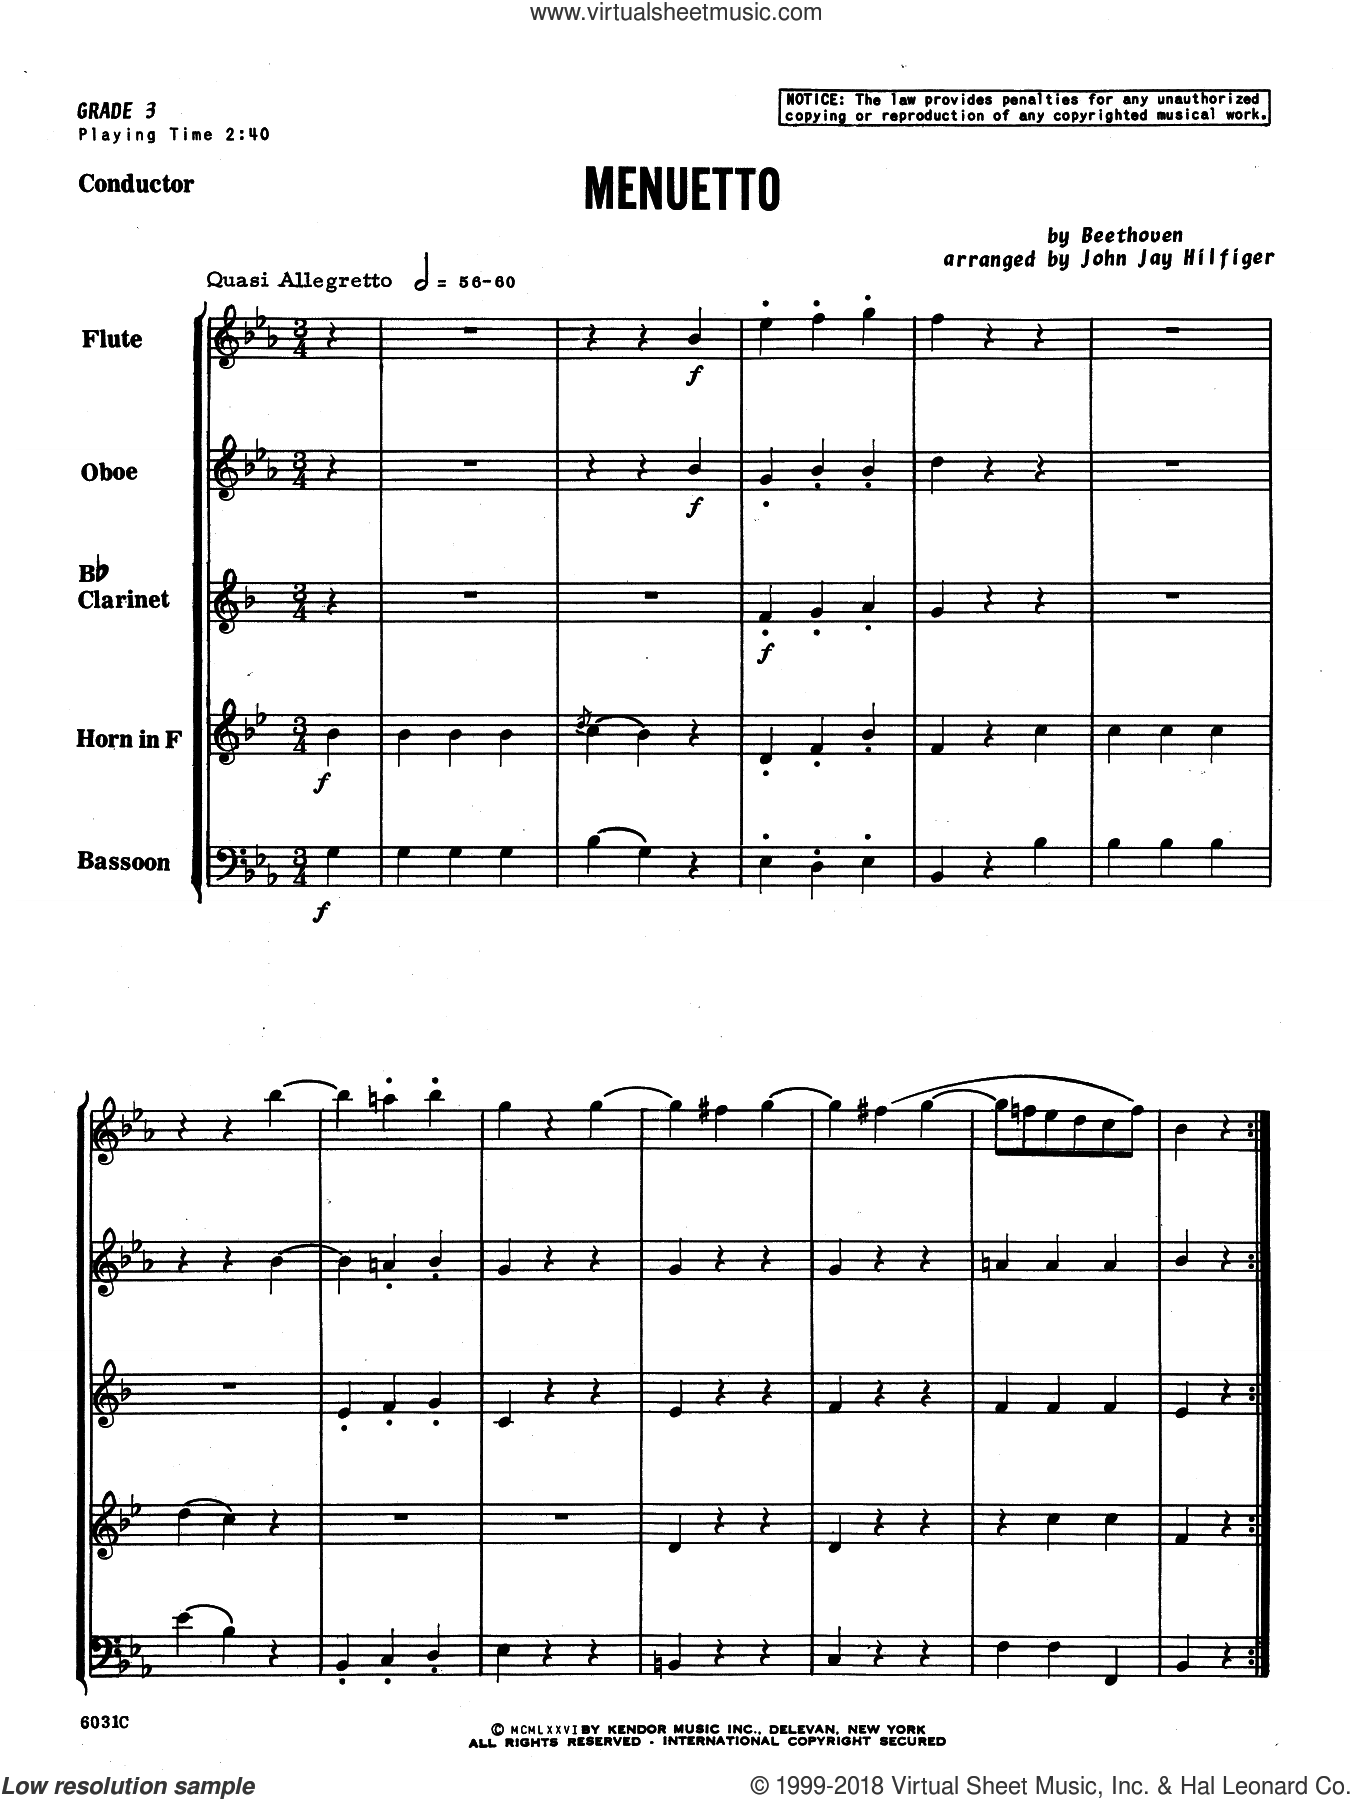 Menuetto (COMPLETE) sheet music for wind quintet by Ludwig van Beethoven and John Jay Hilfiger, classical score, intermediate skill level